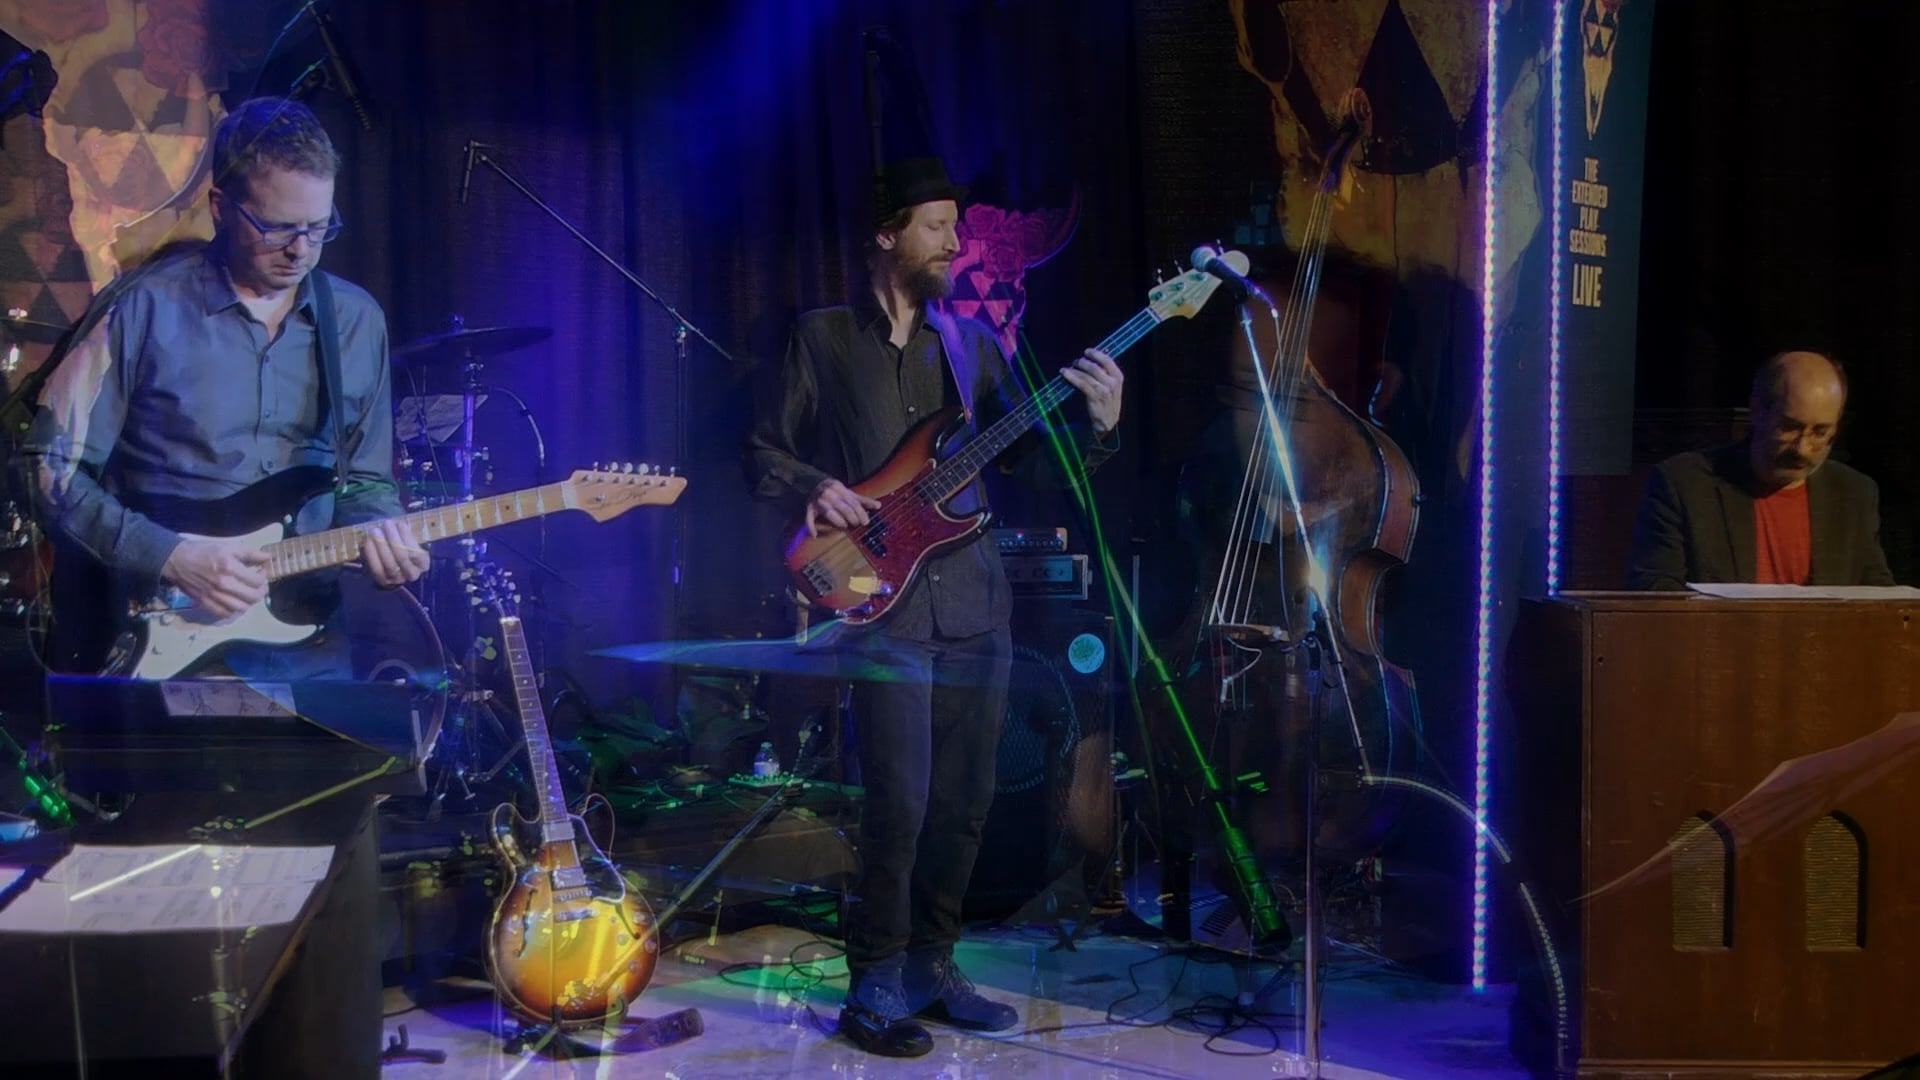 'Gulfstream' - The Jesse Williams Quartet - from The Extended Play Sessions